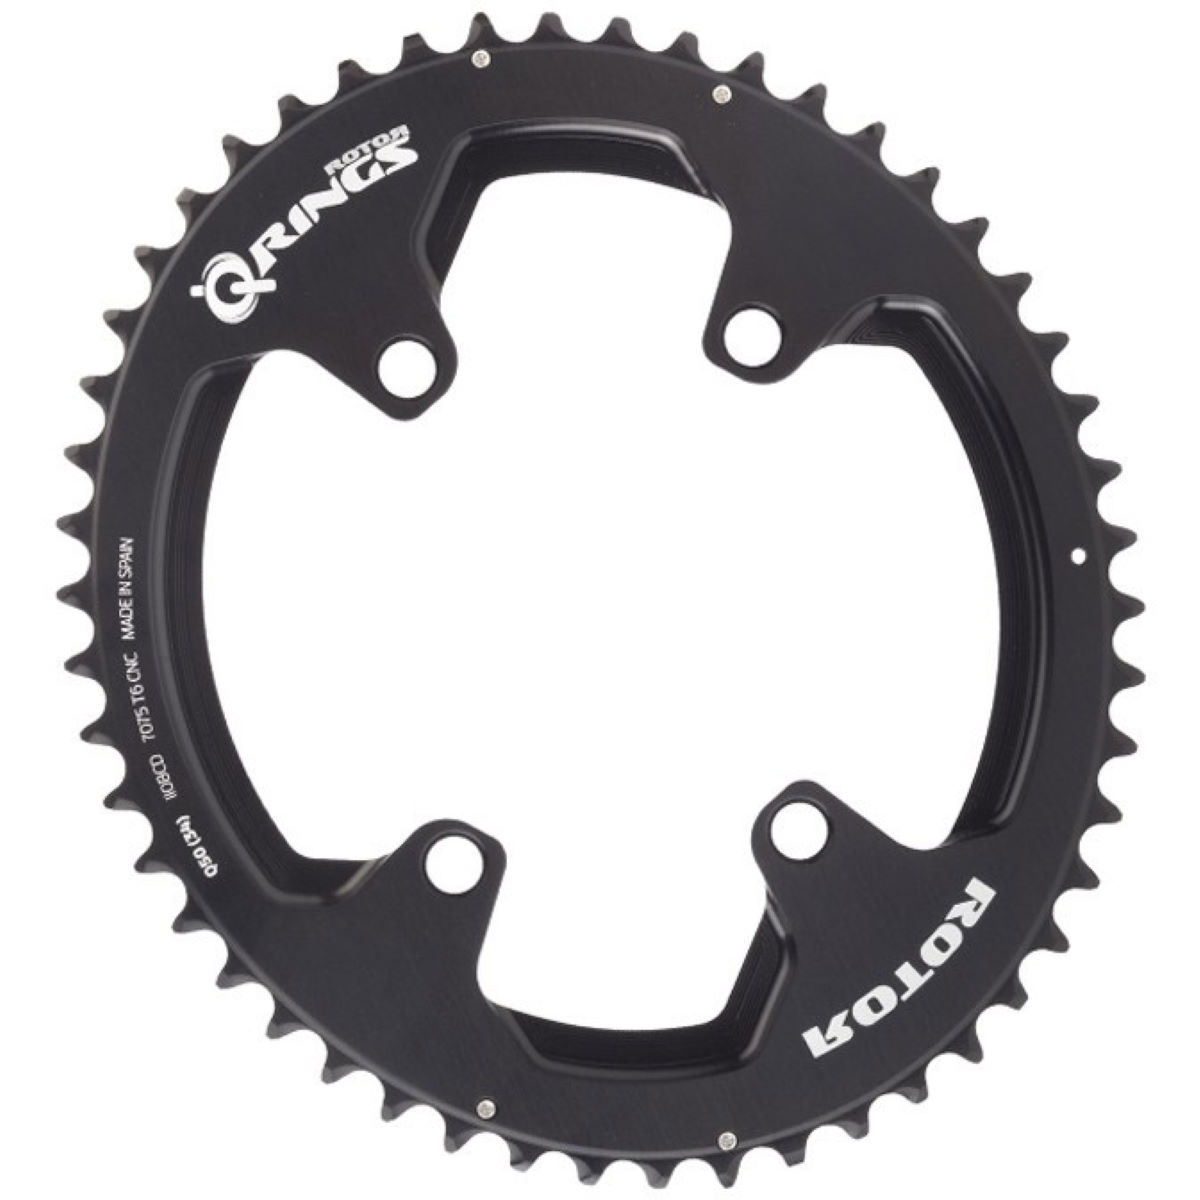 Rotor Rotor Q RINGS BCD110x4 Q50T(34) OUTER BLACK   Chain Rings